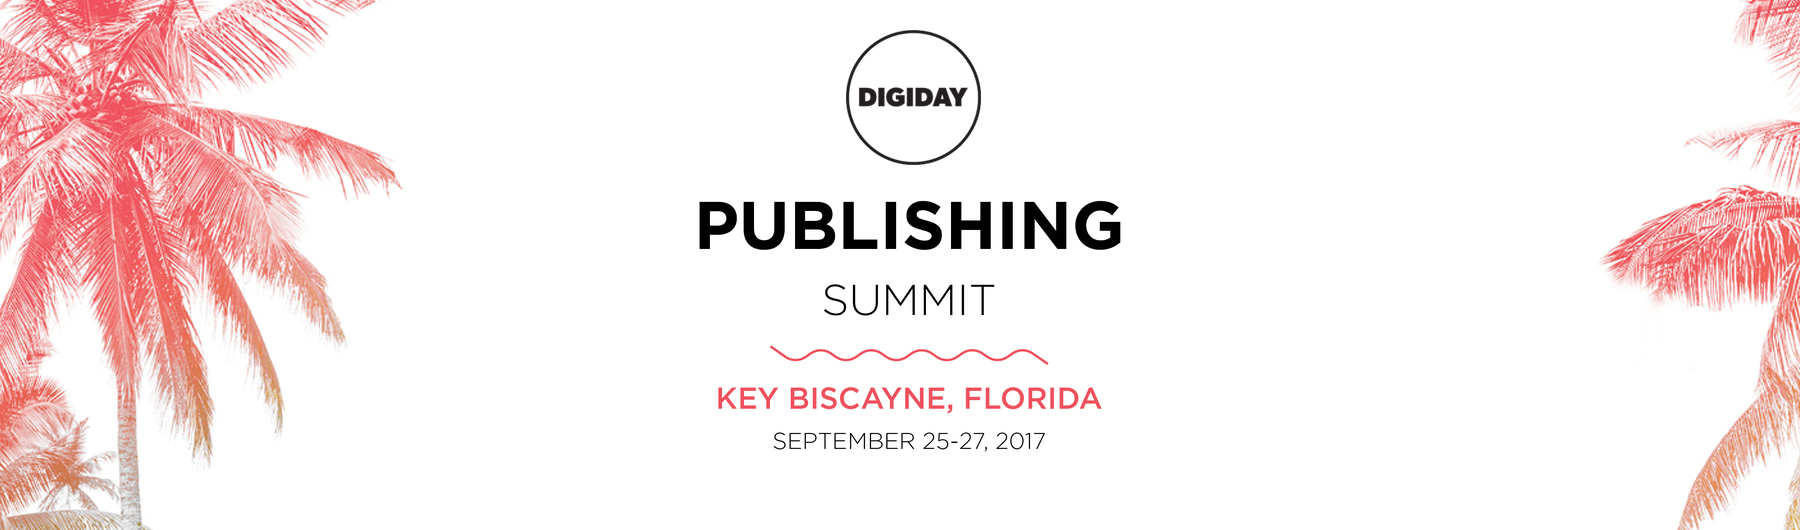 Digiday Publishing Summit September 2017